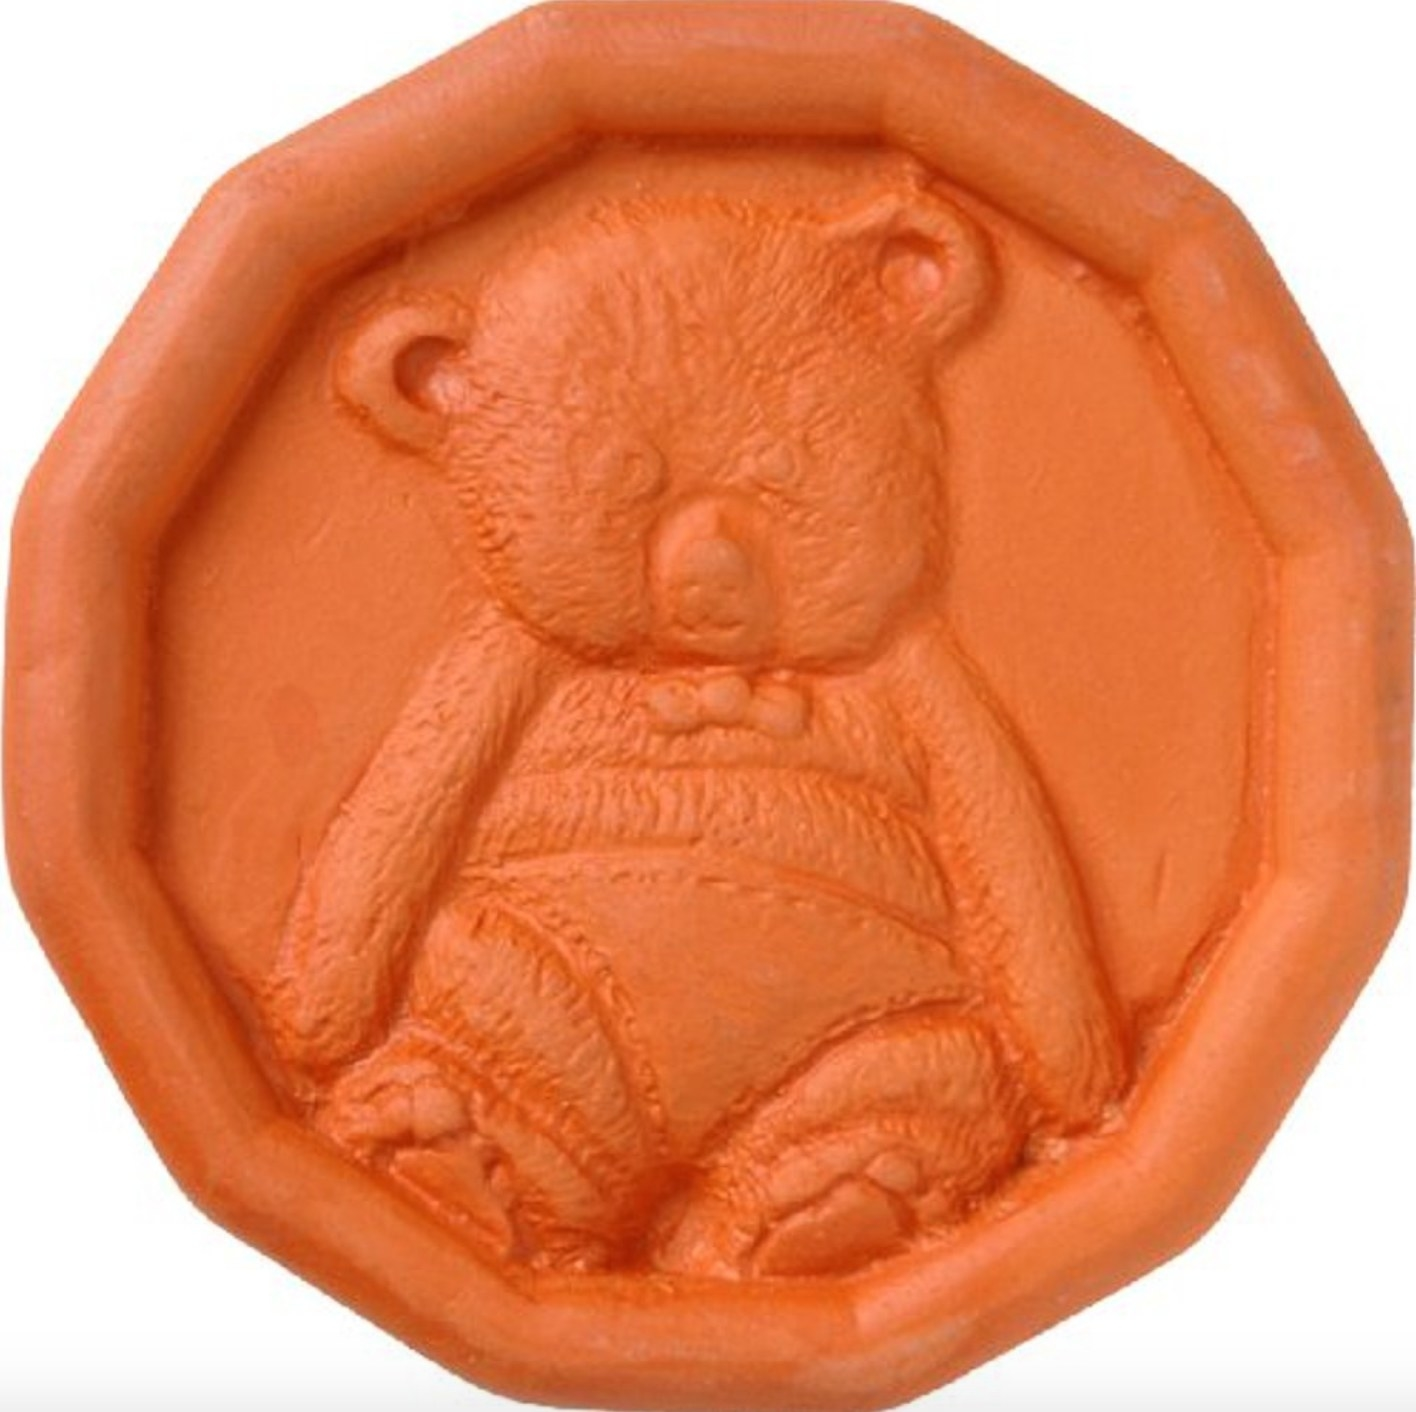 The round terra cotta bear